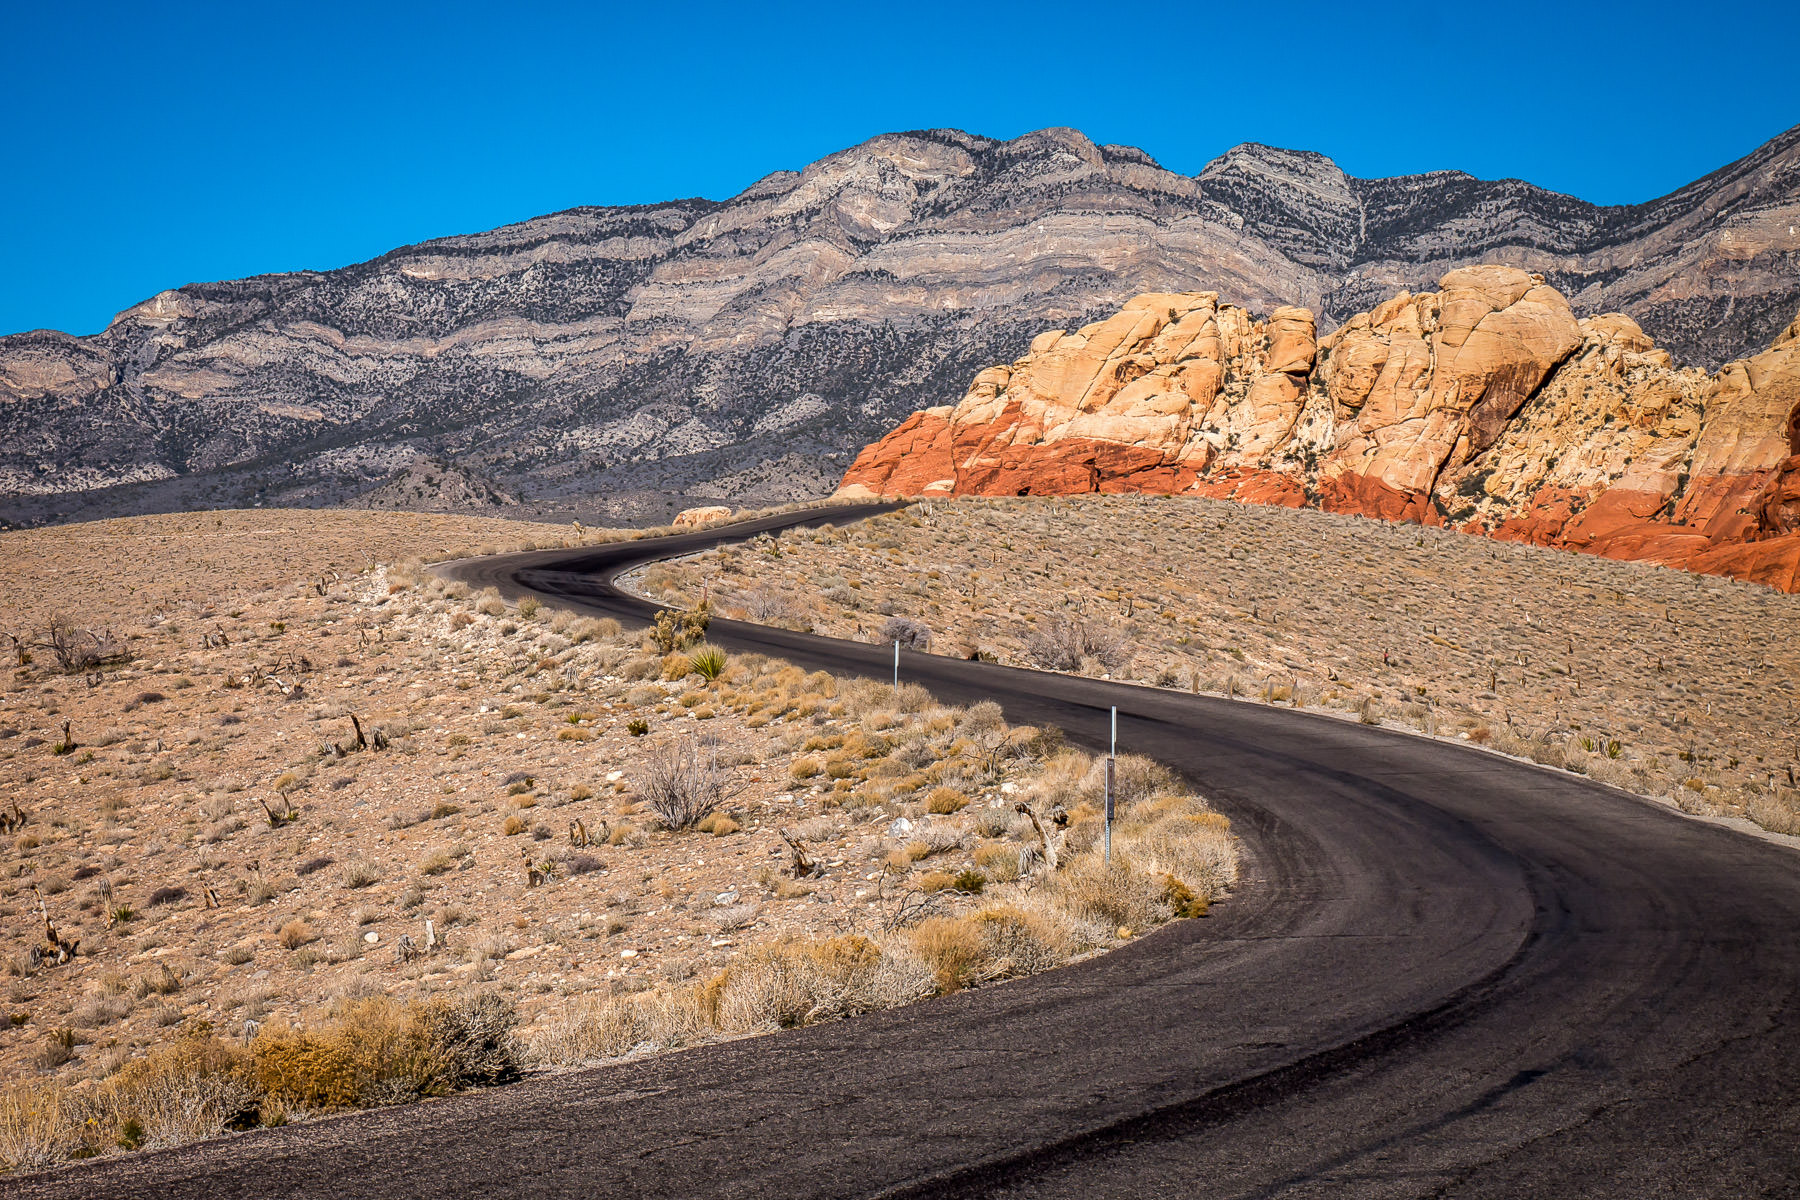 Red Rock Canyon National Conservation Area's Scenic Loop Drive snakes through the Nevada desert.